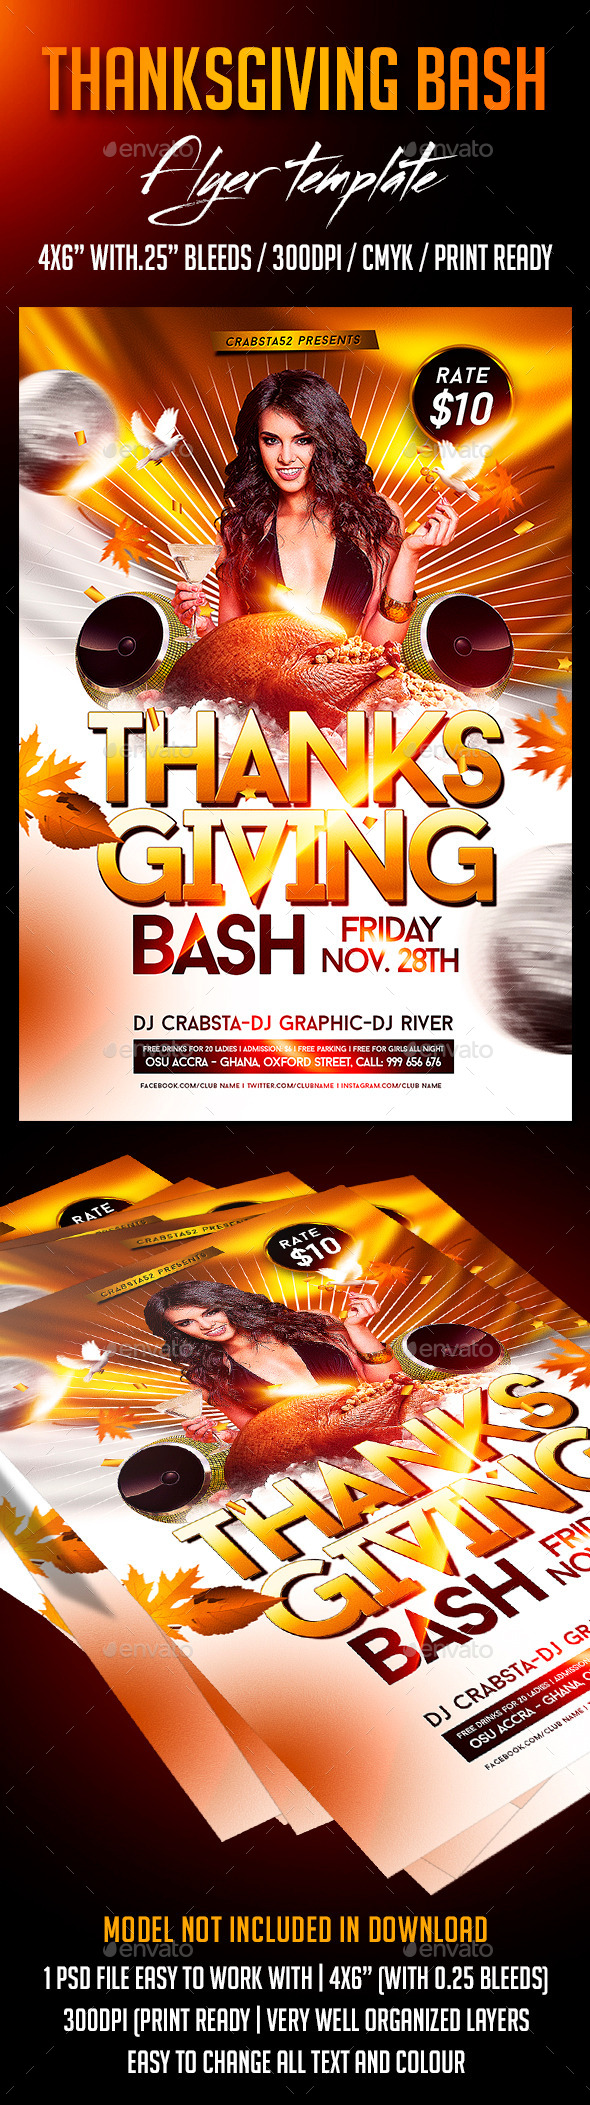 Thanksgiving Bash Flyer Template - Holidays Events